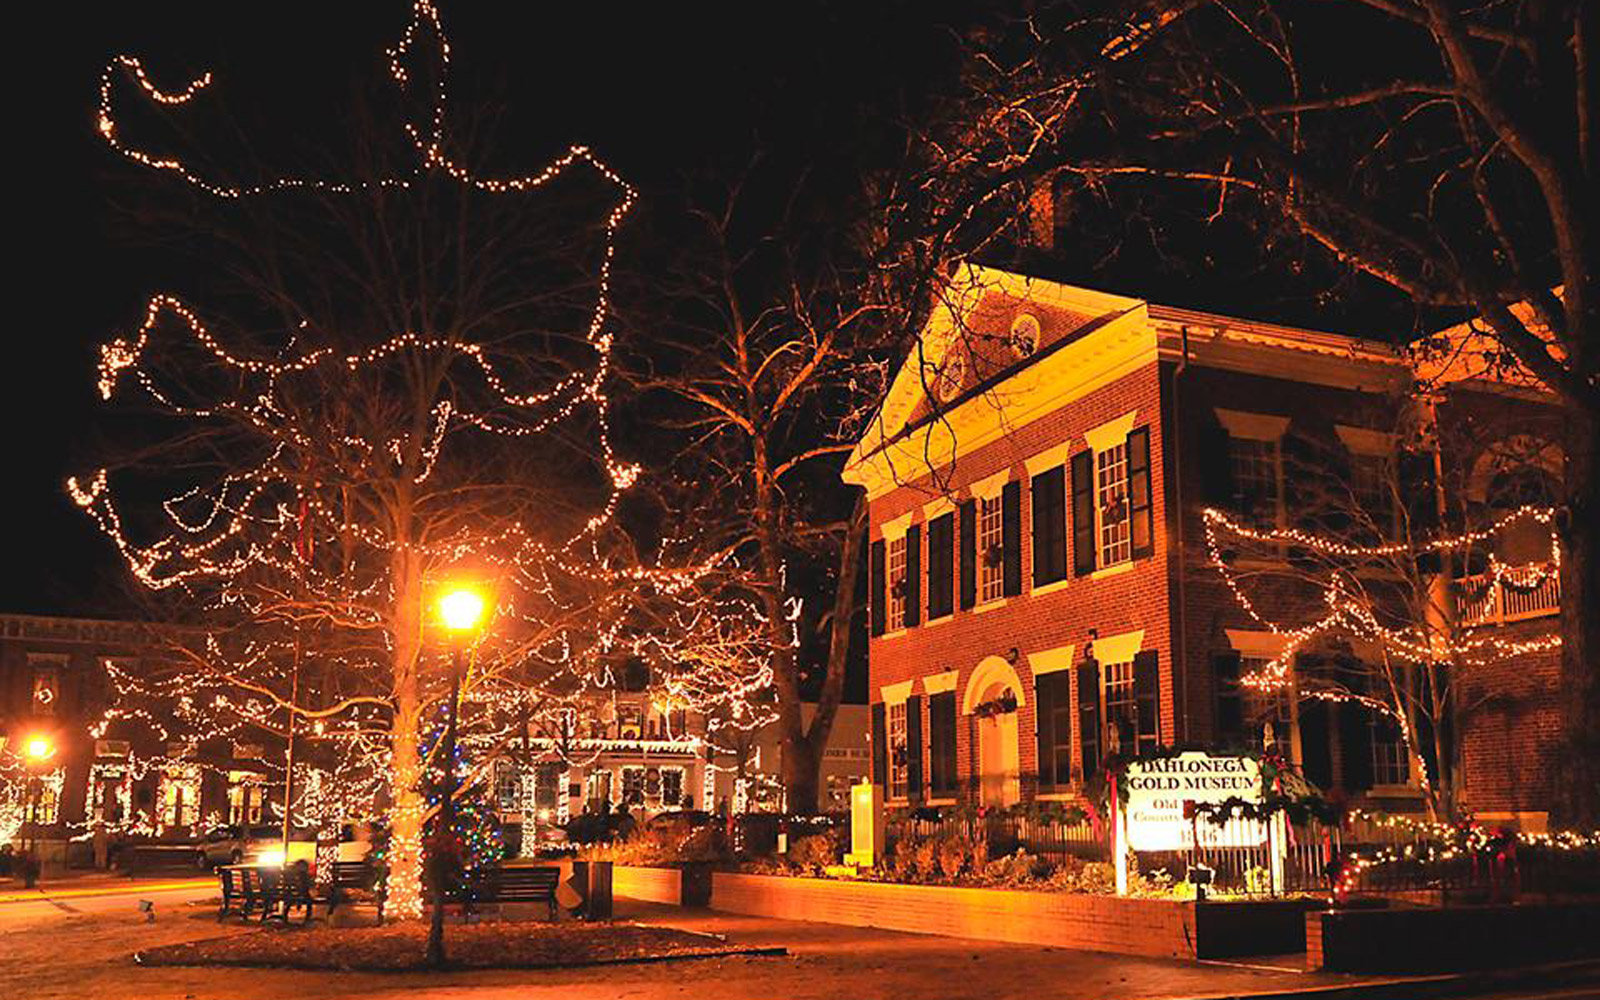 Dahlonega, Georgia at Christmas